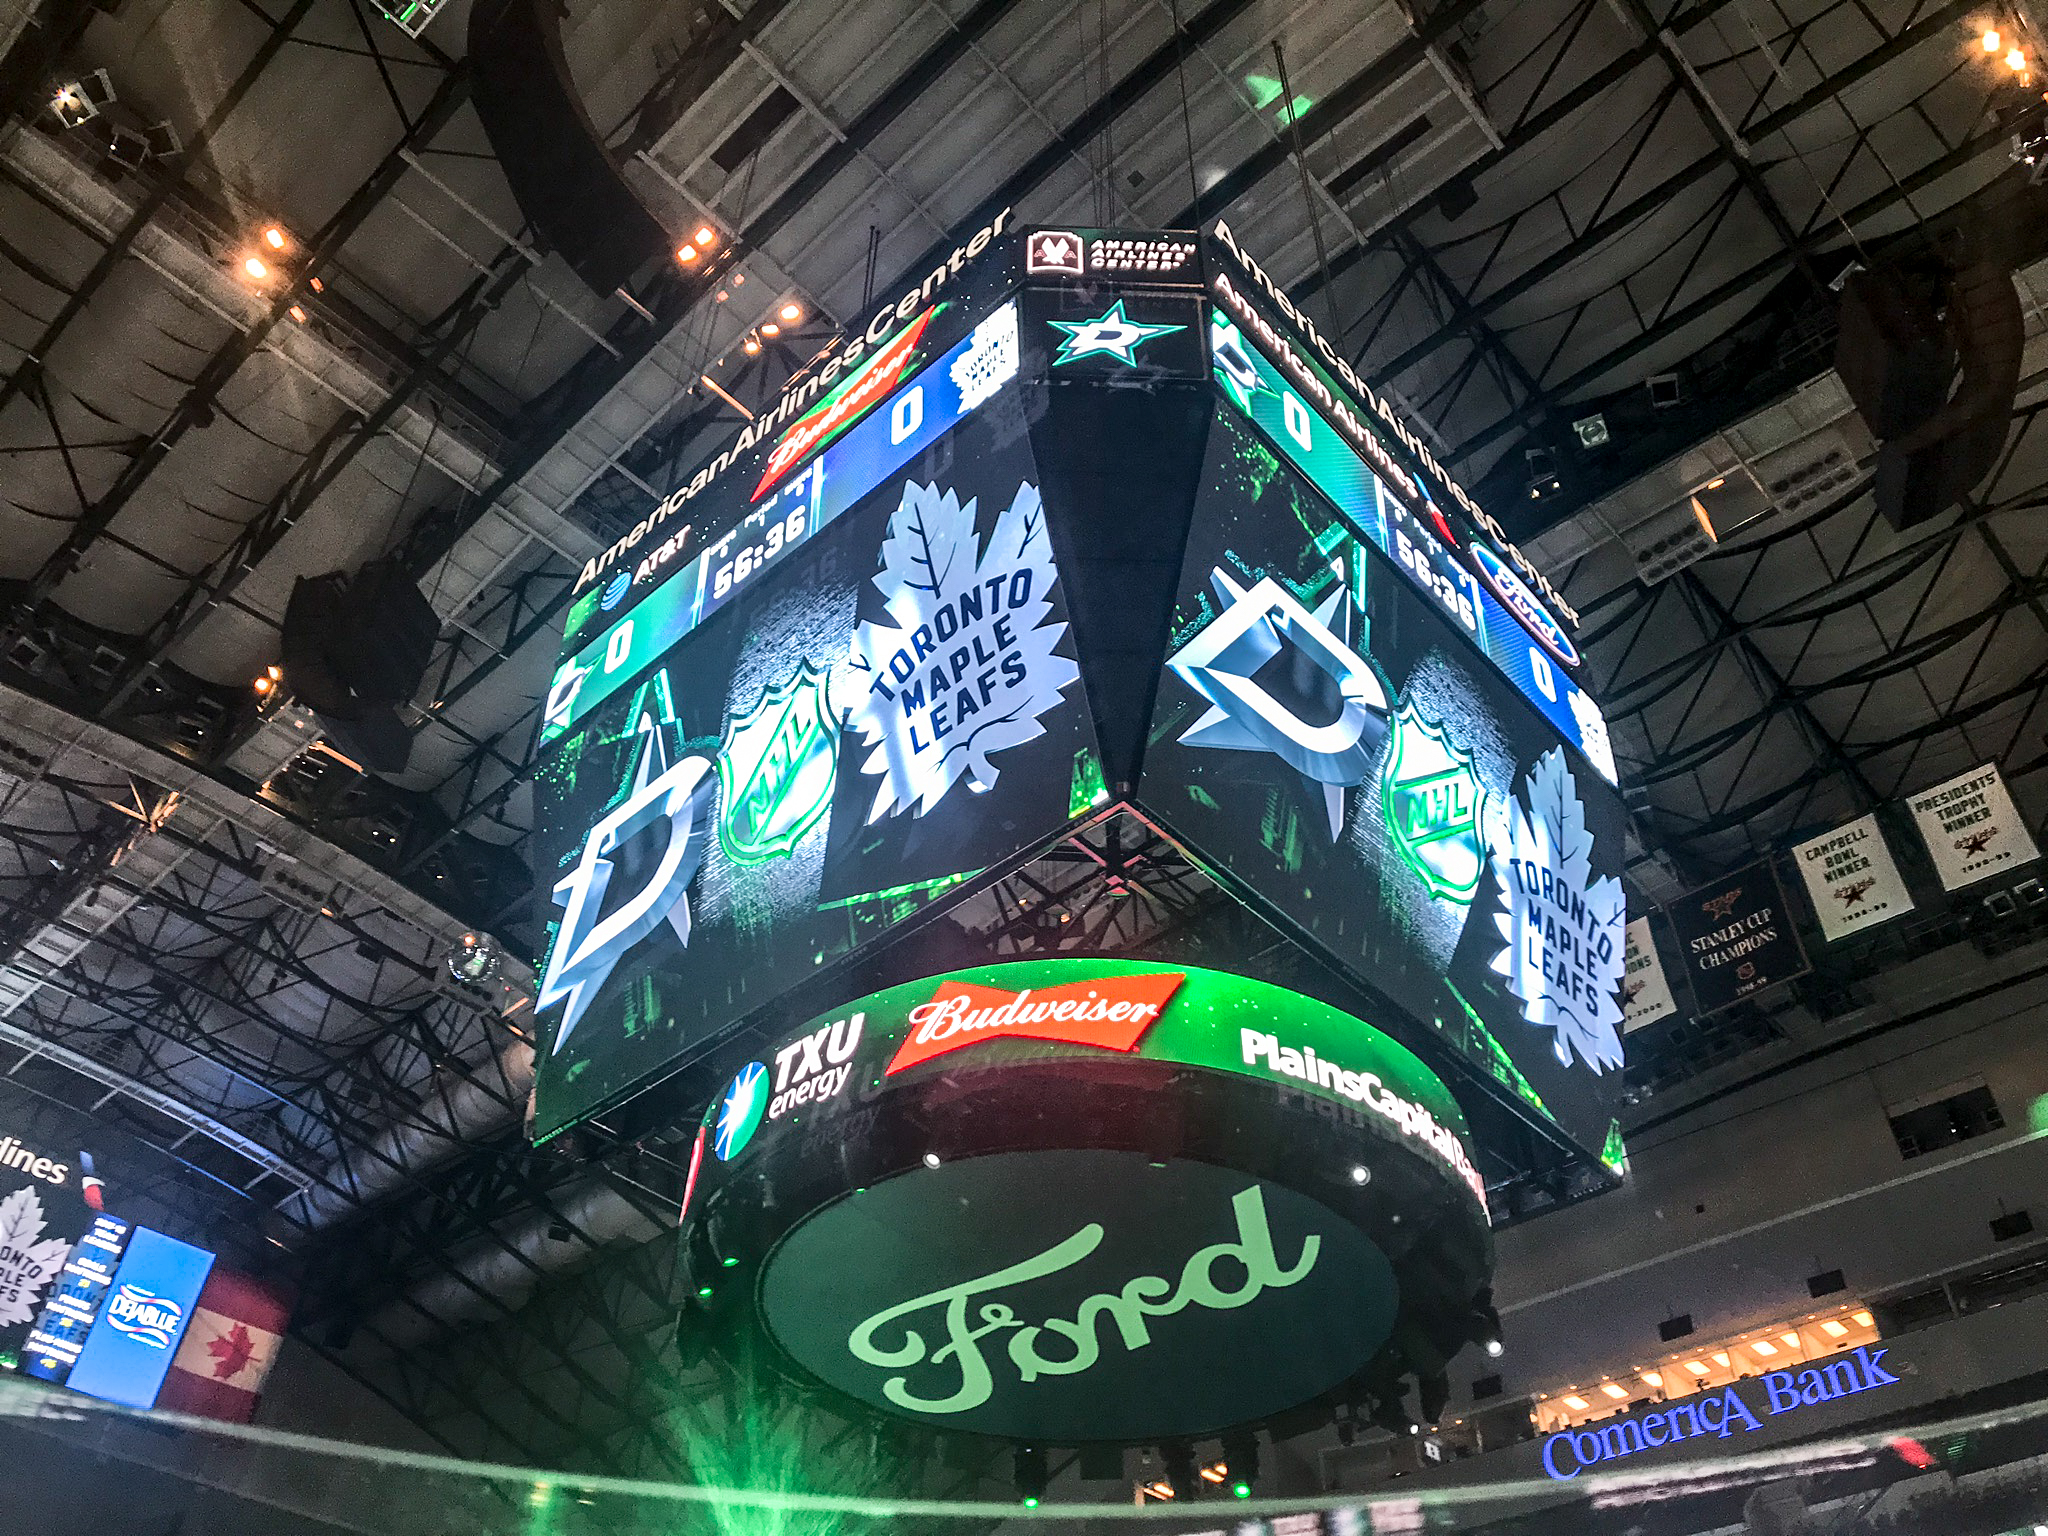 Dallas Stars Score Board